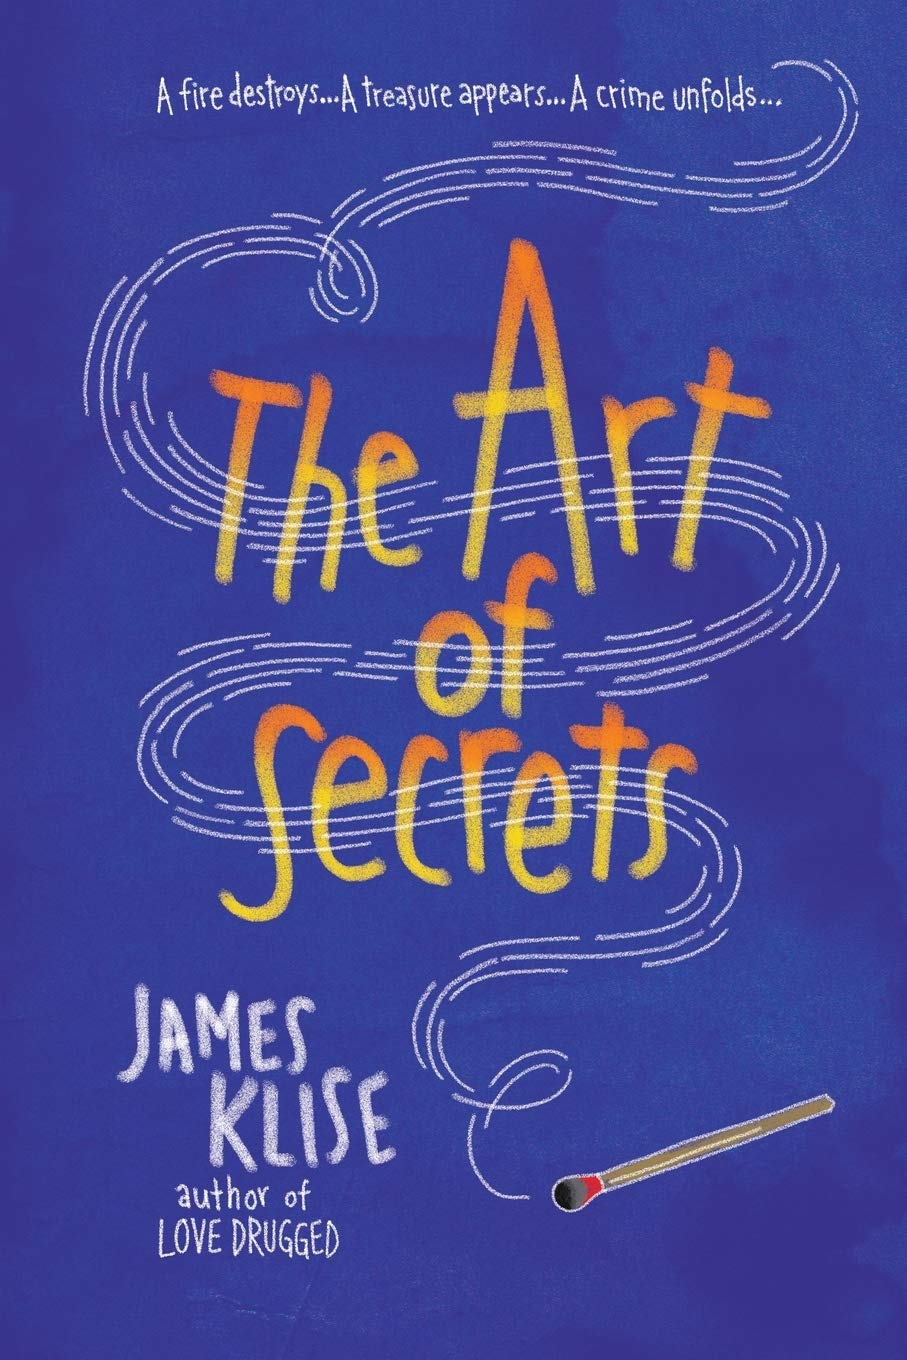 Amazon.com: Art of Secrets (9781616204822): Klise, James: Books